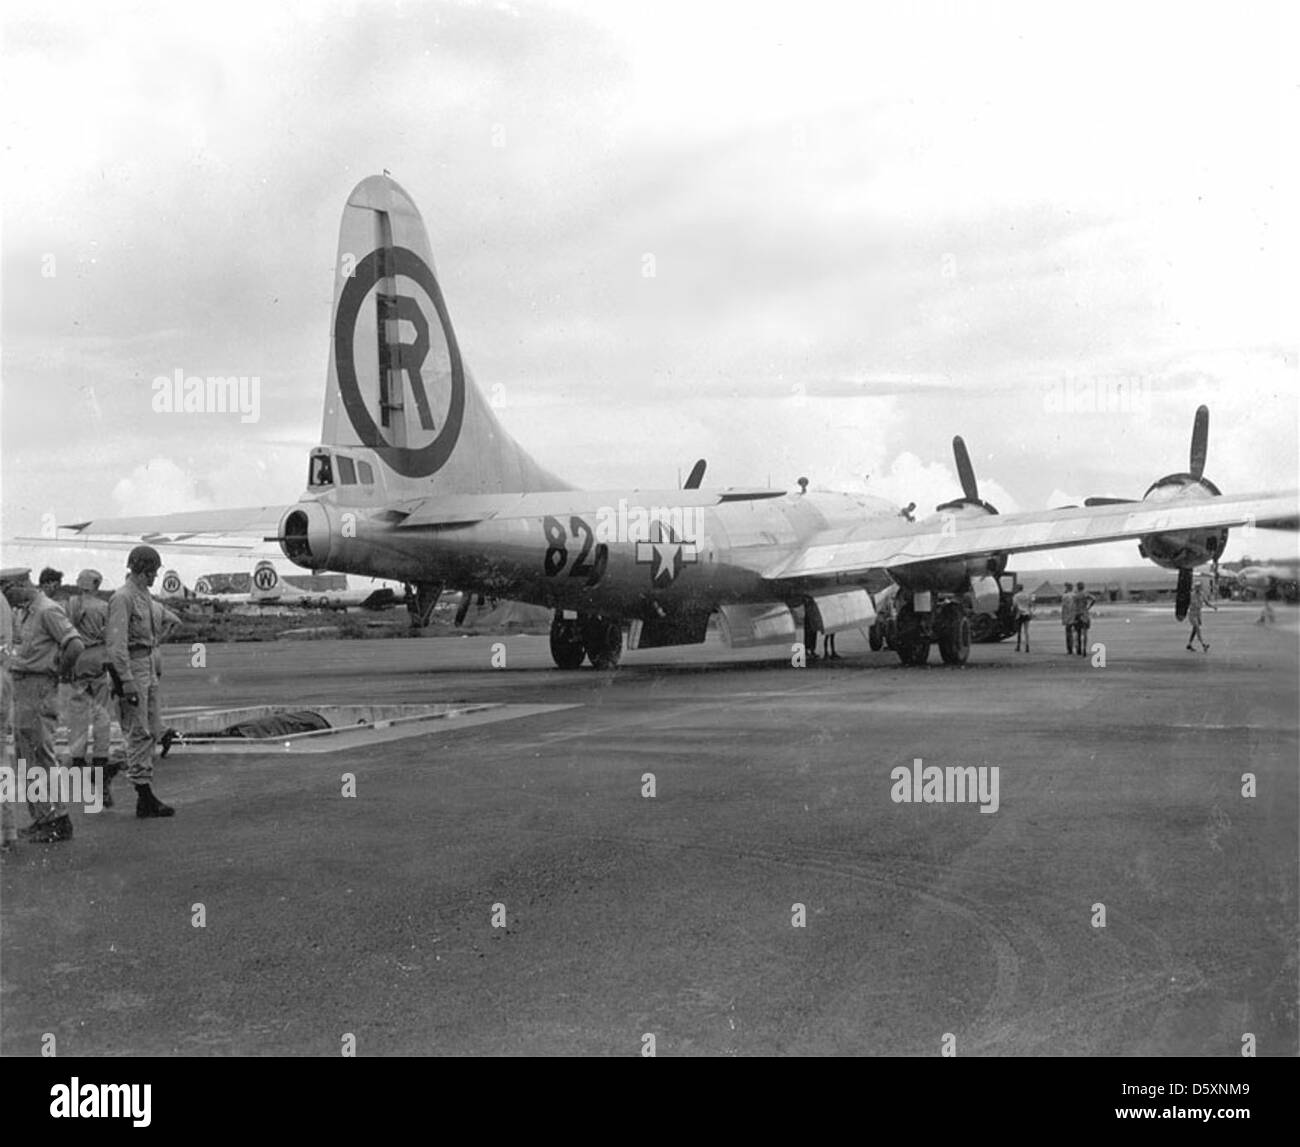 """The U.S.A.A.F. Martin-Omaha B-29-45-MO """"Superfortress"""" """"Enola Gay"""" is backed over a loading pit to upload the """"Atomic Stock Photo"""